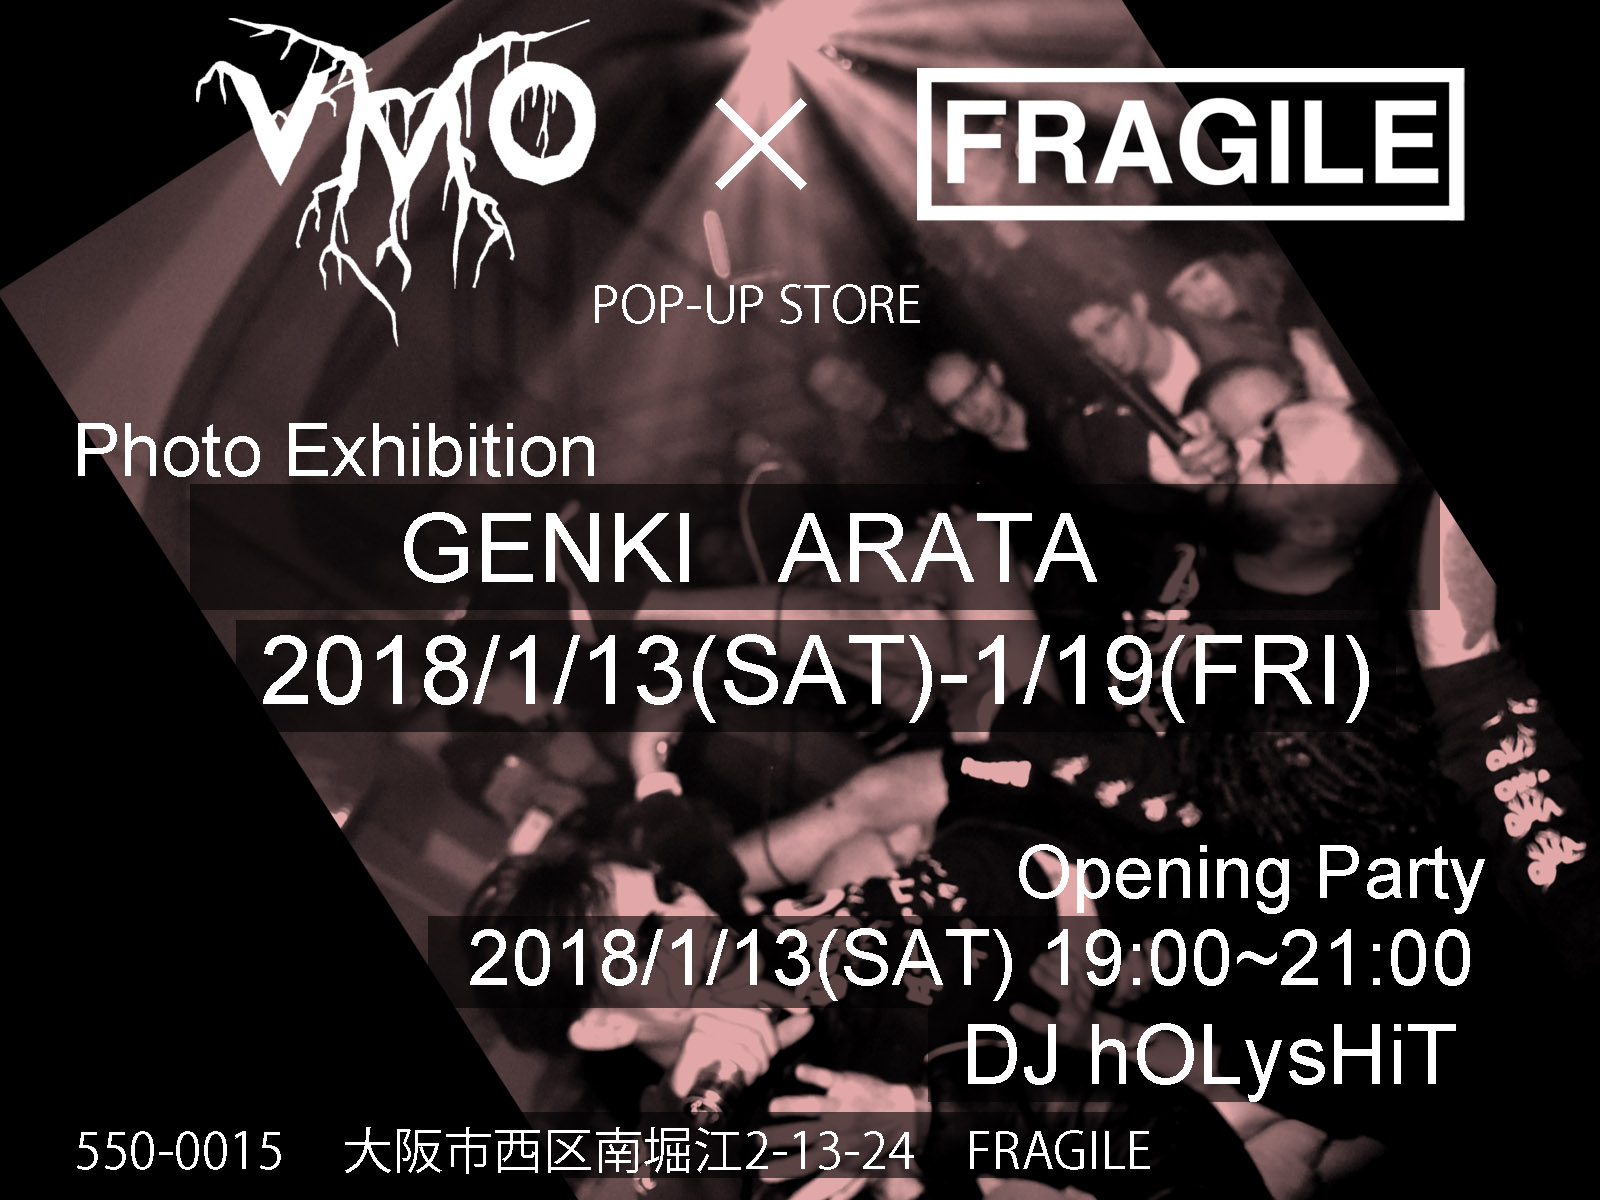 VMO × FRAGILE POP-UP STORE 1月13日より開催